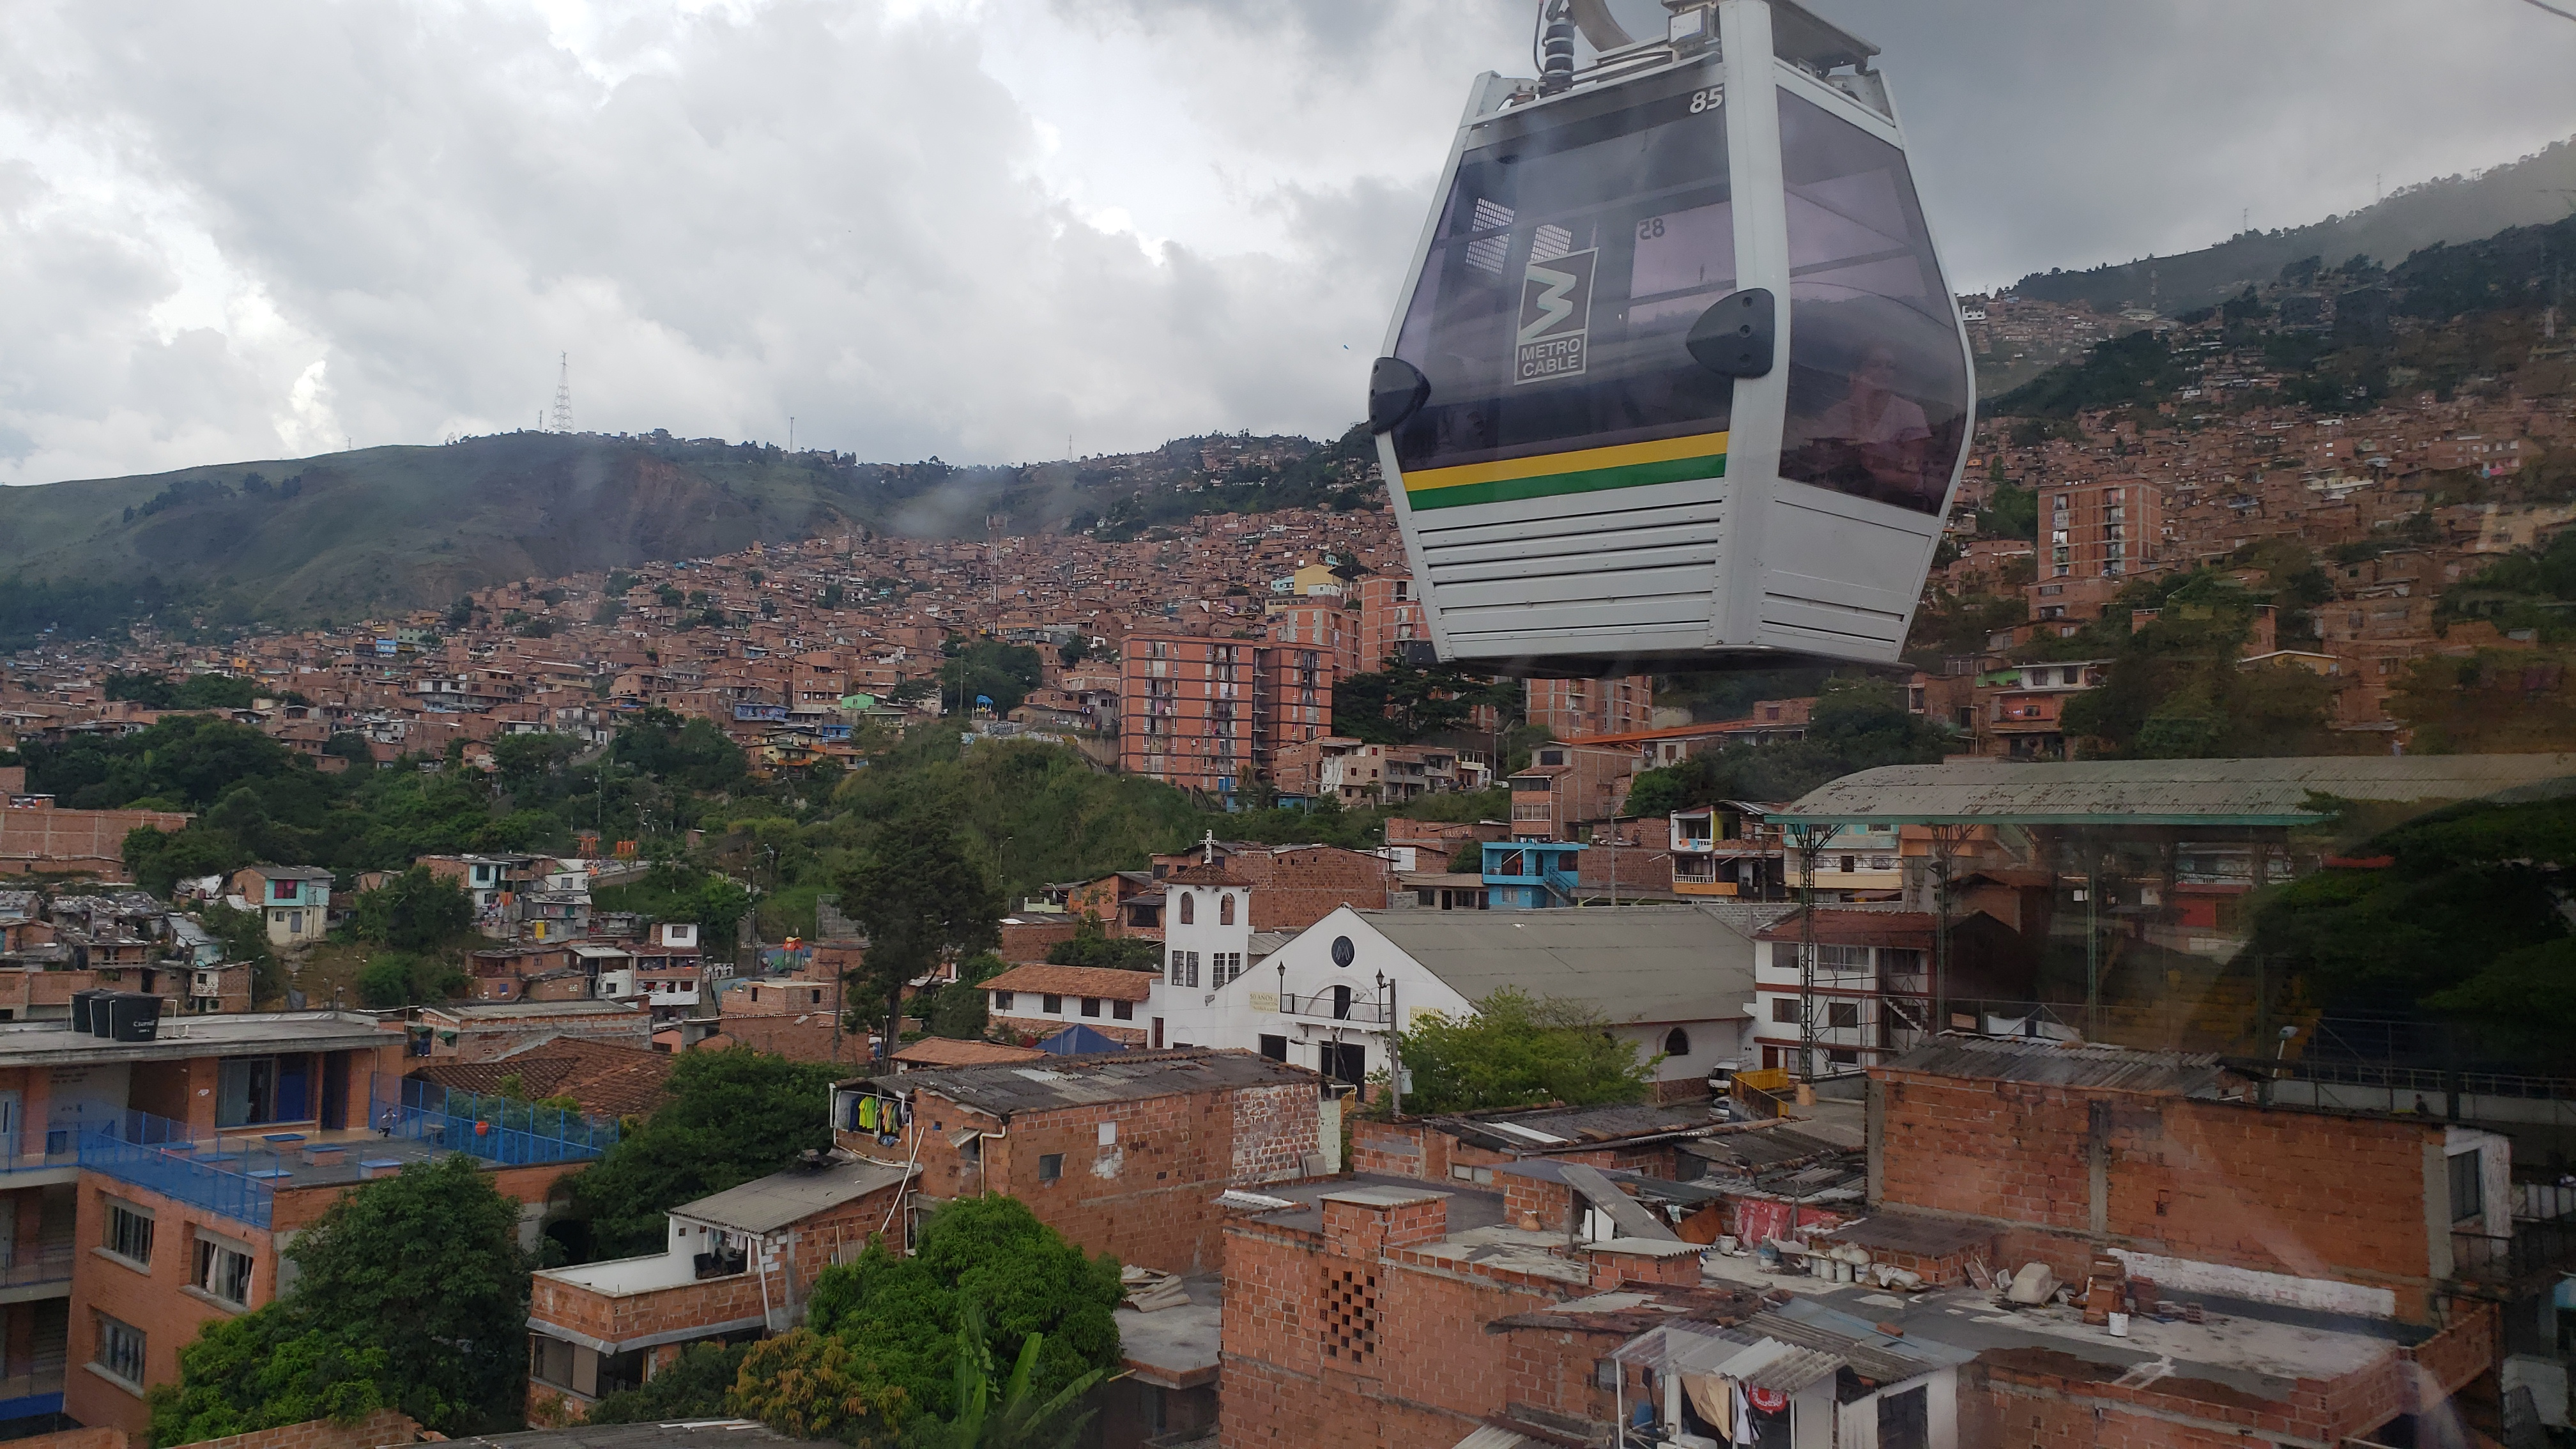 Medellin Metrocable - Why Visiting Medellin Should Be on Your Wish List